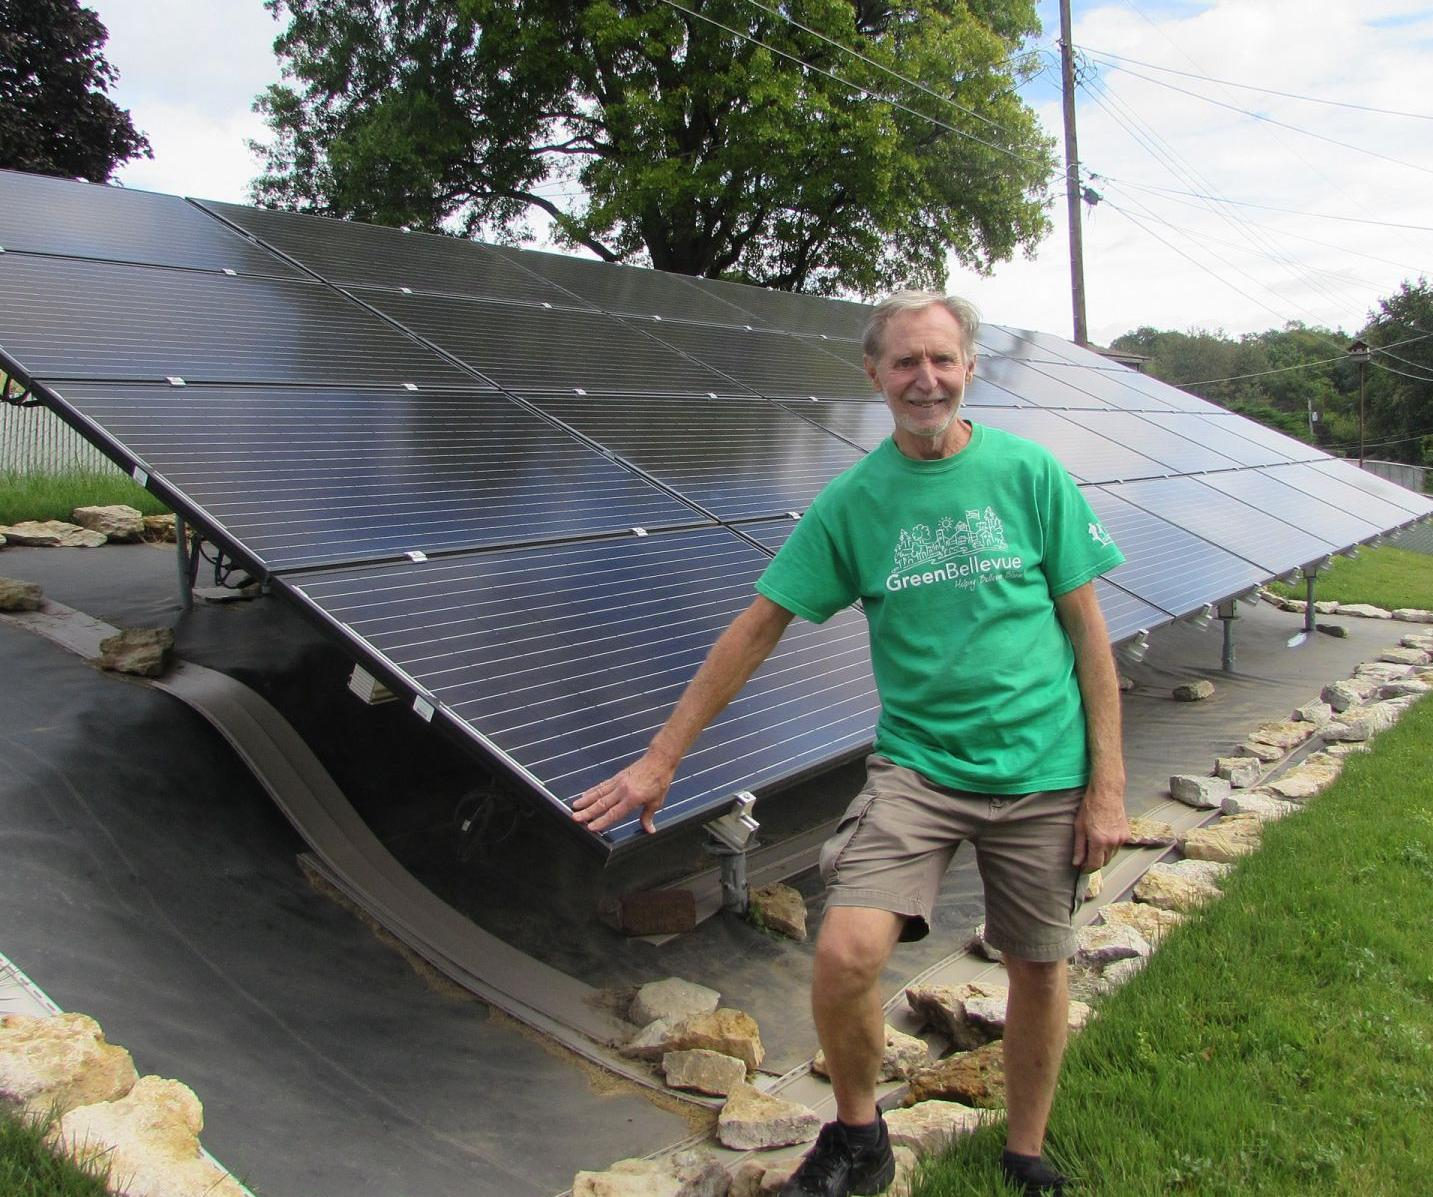 This Nebraska man doesn't use gasoline or pay for electricity and hasn't set out trash for 3 years